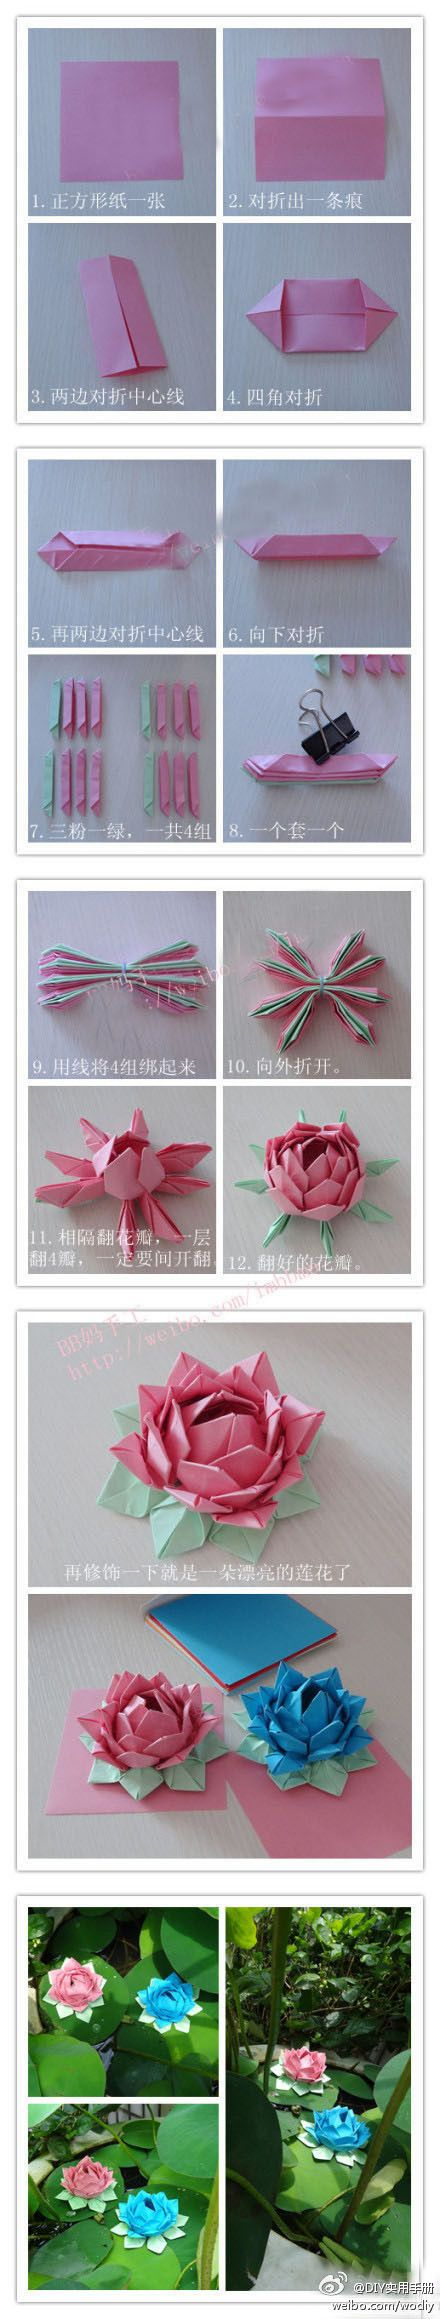 181 Best Origami Images On Pinterest Origami Paper Paper Flowers